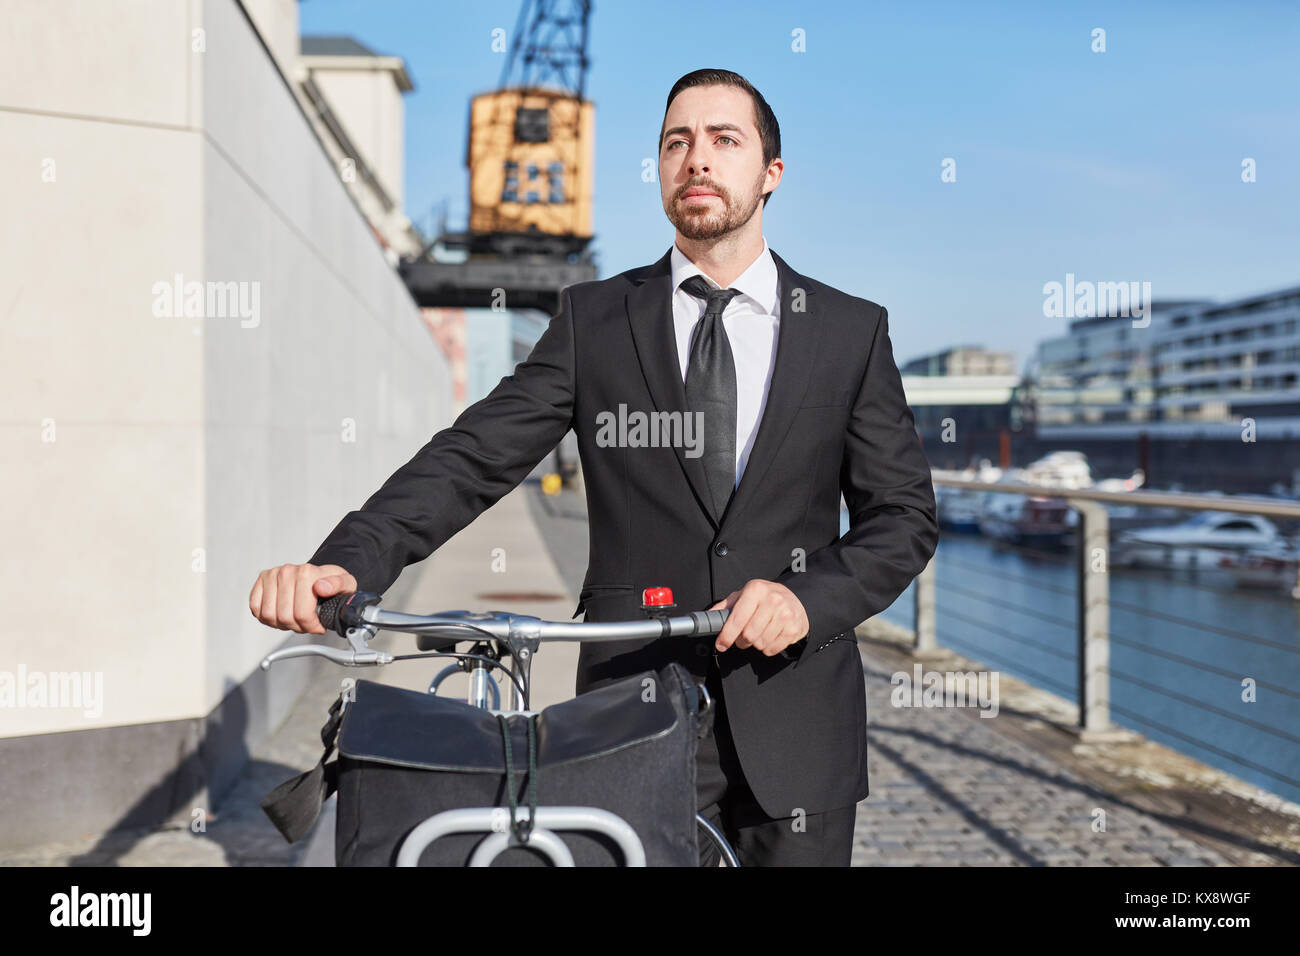 Alternative business founder pushes bicycle through the city - Stock Image